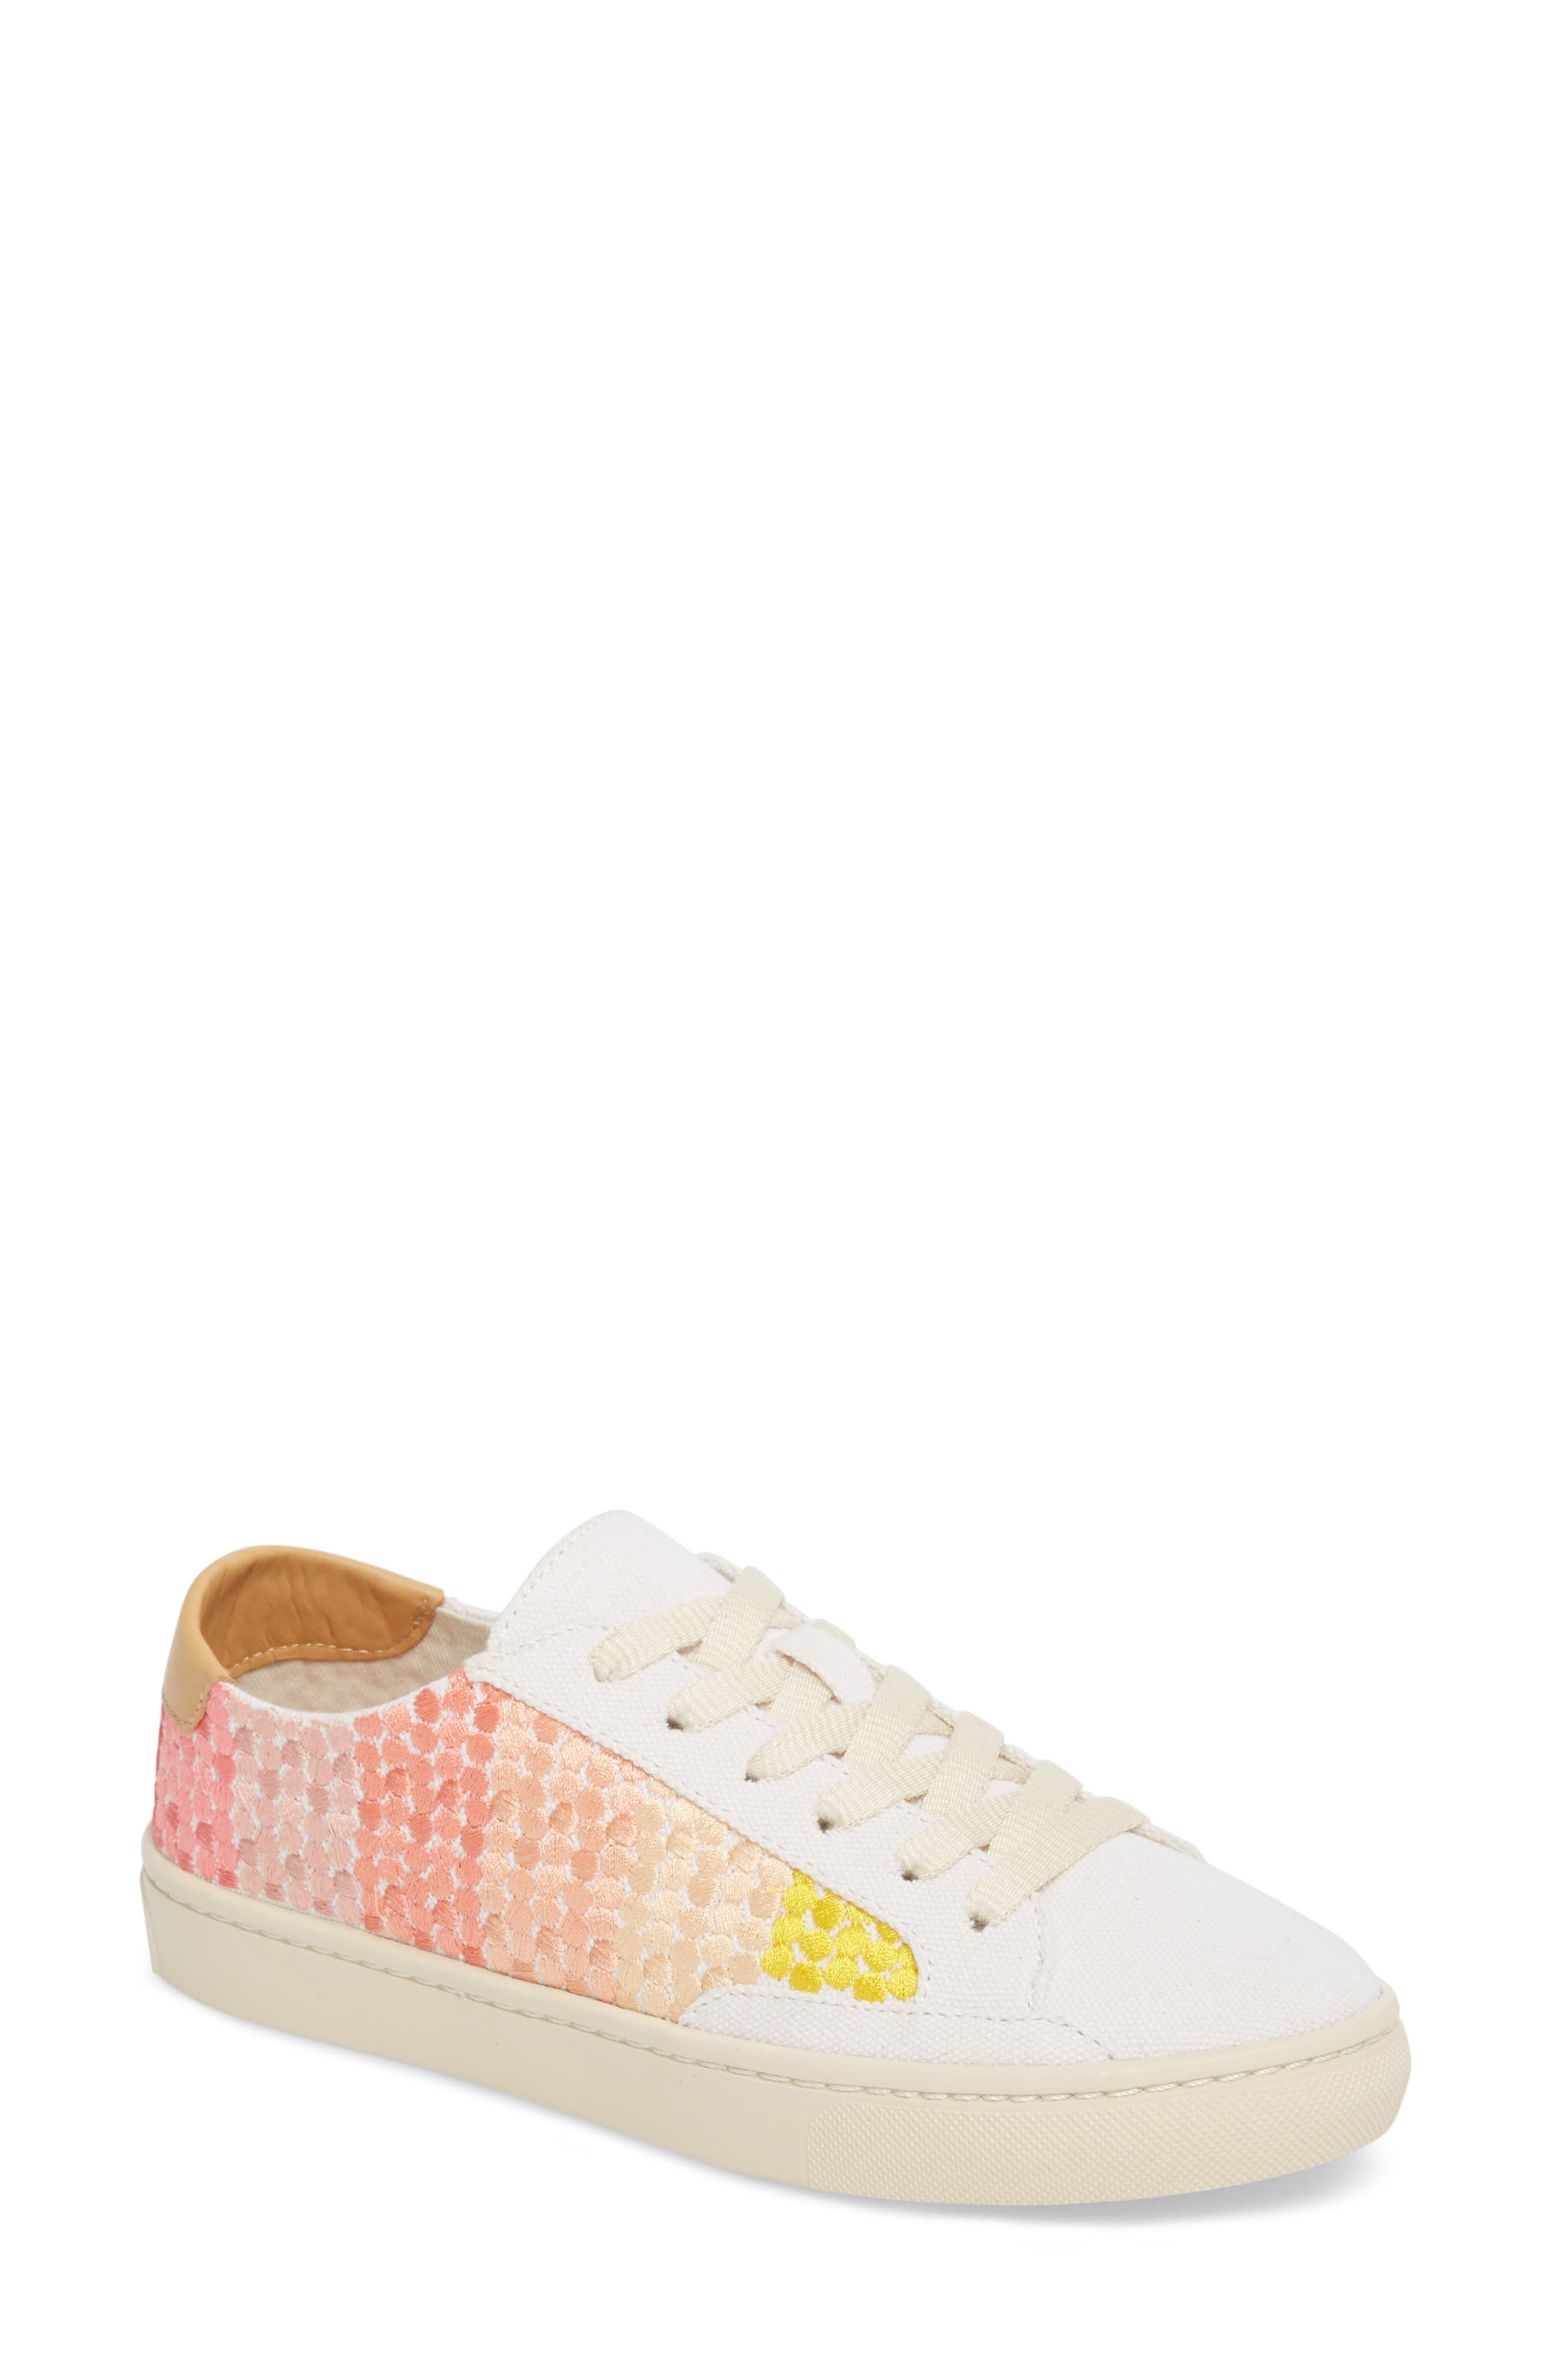 Embroidered Ombre Sneaker,                             Main thumbnail 1, color,                             Sunshine